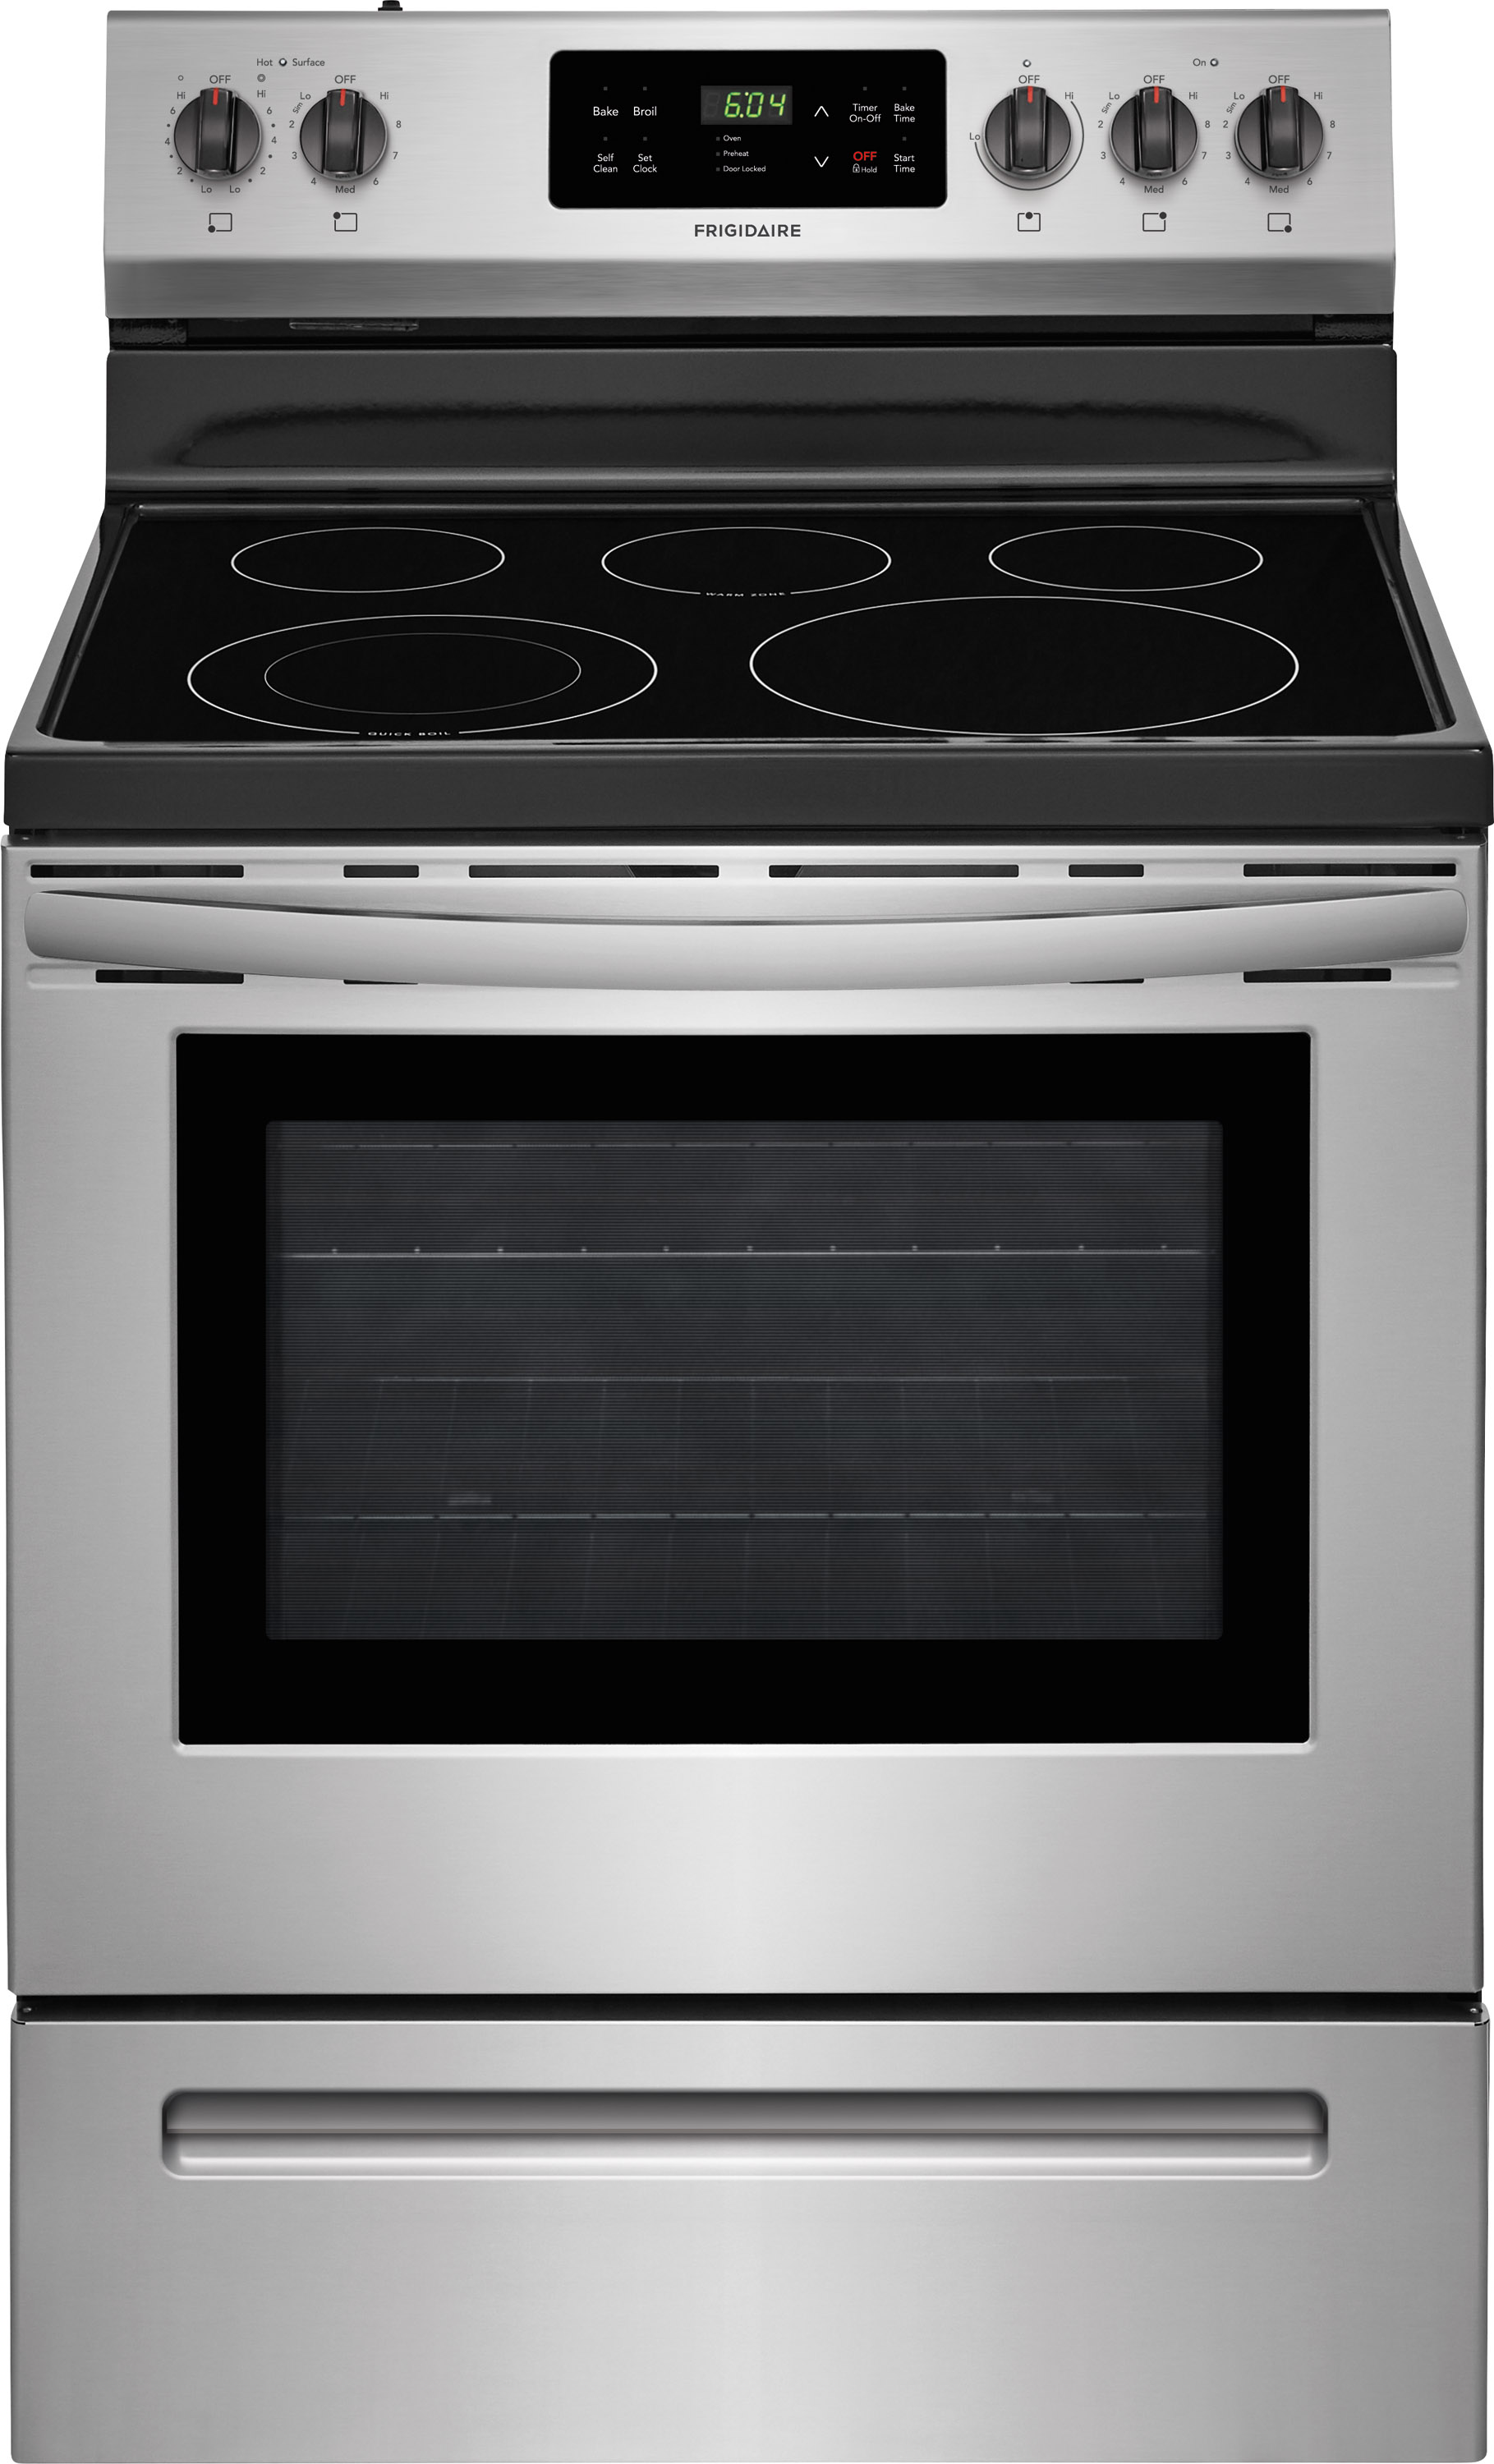 small resolution of a jenn air cooktop wiring